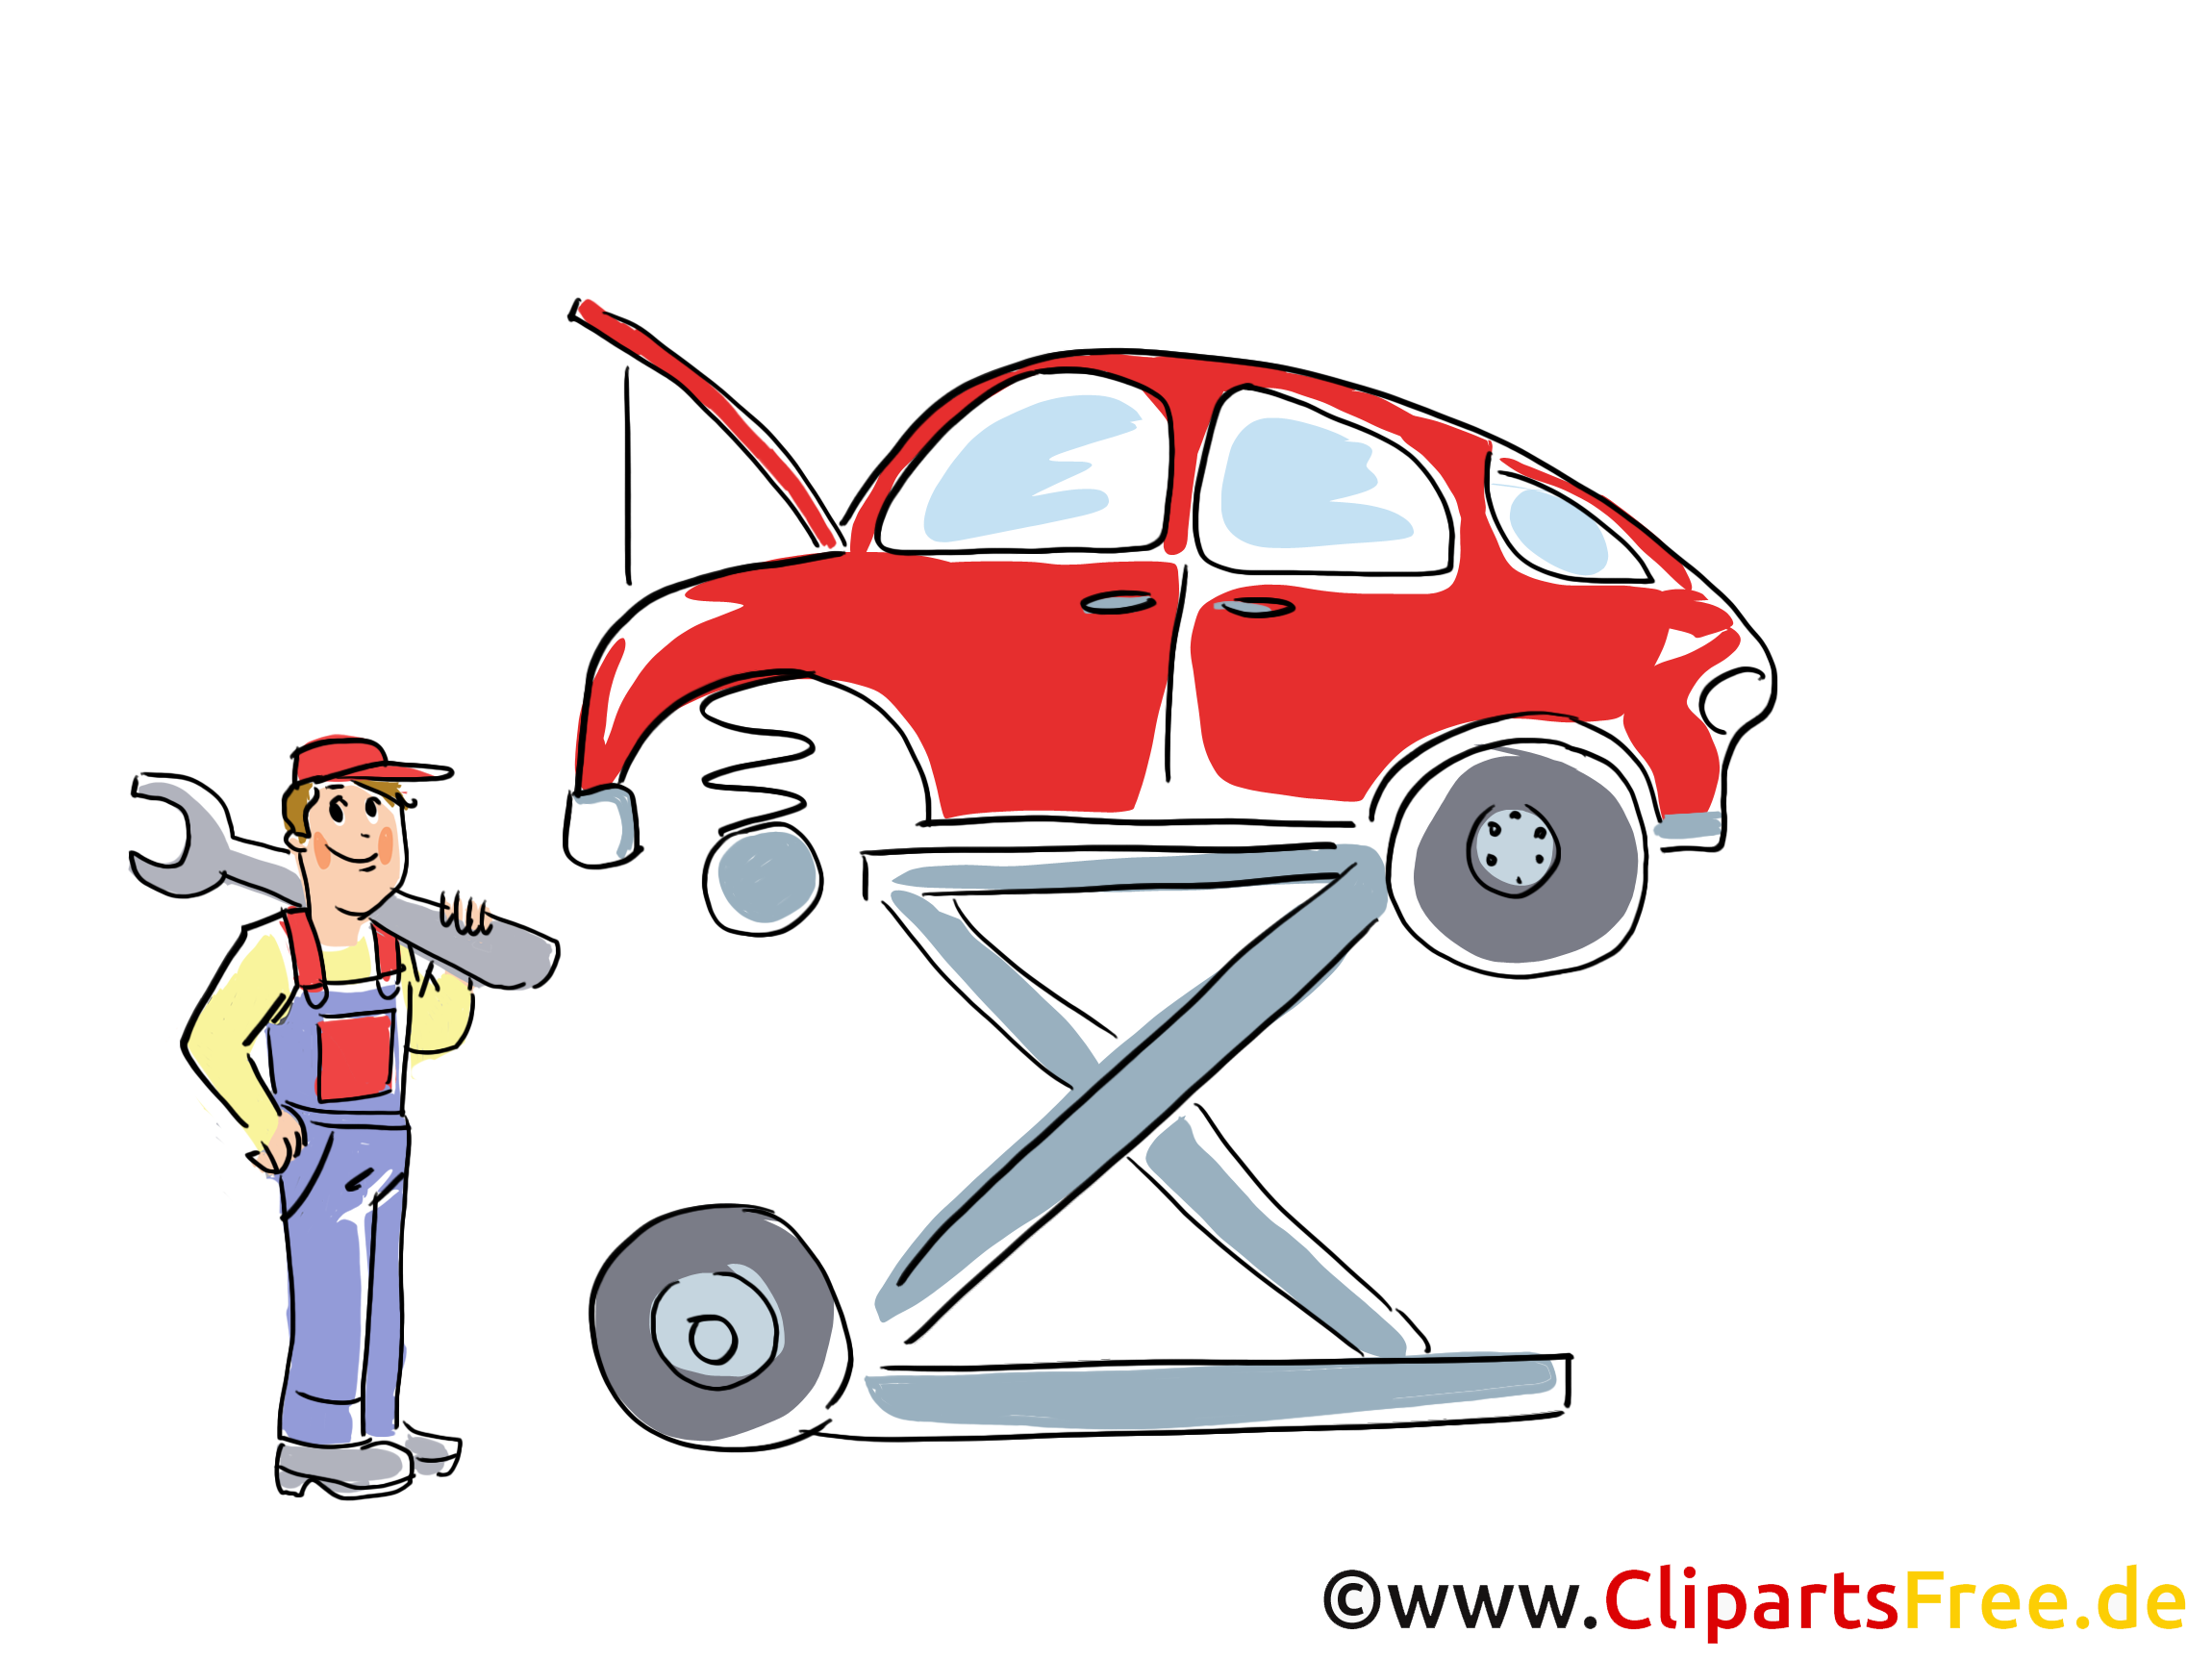 clipart auto tanken - photo #14